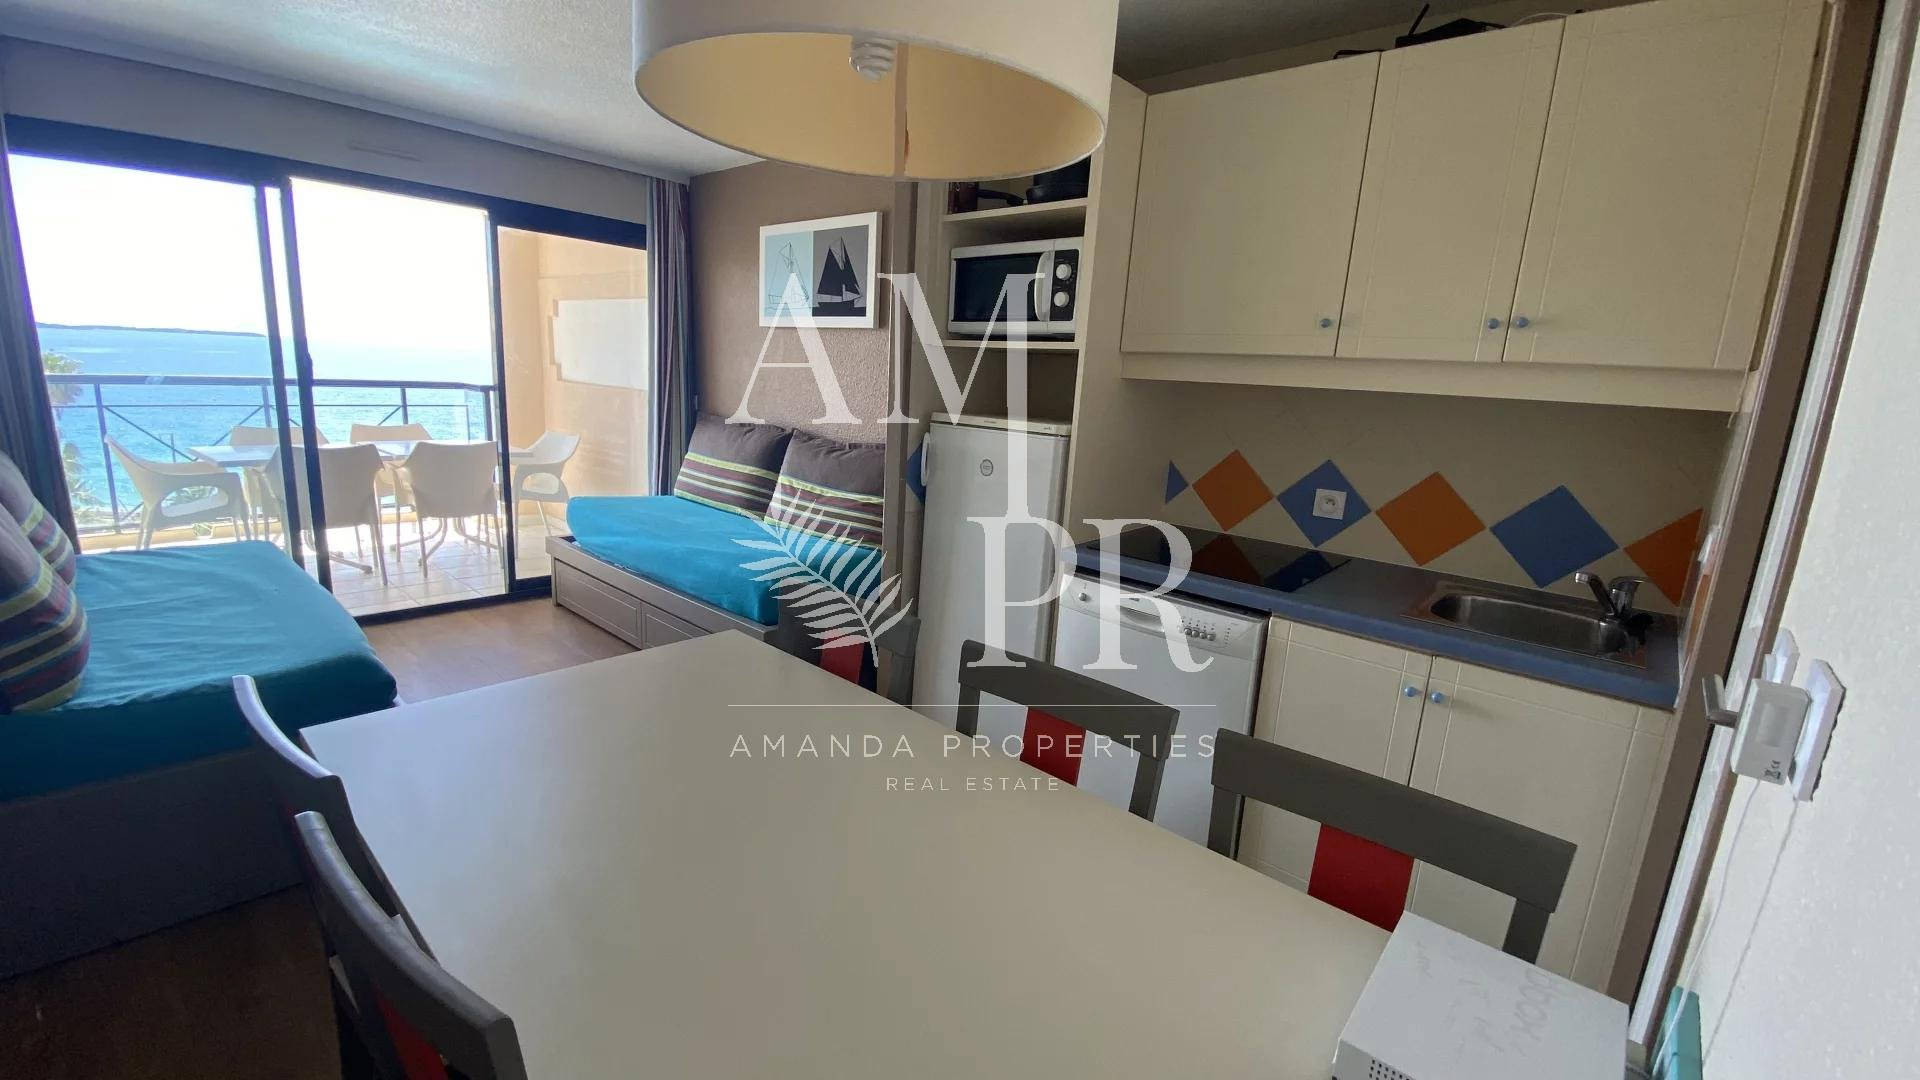 Duplex Apartment T3 - Residence with swimming pools - In front of the beach